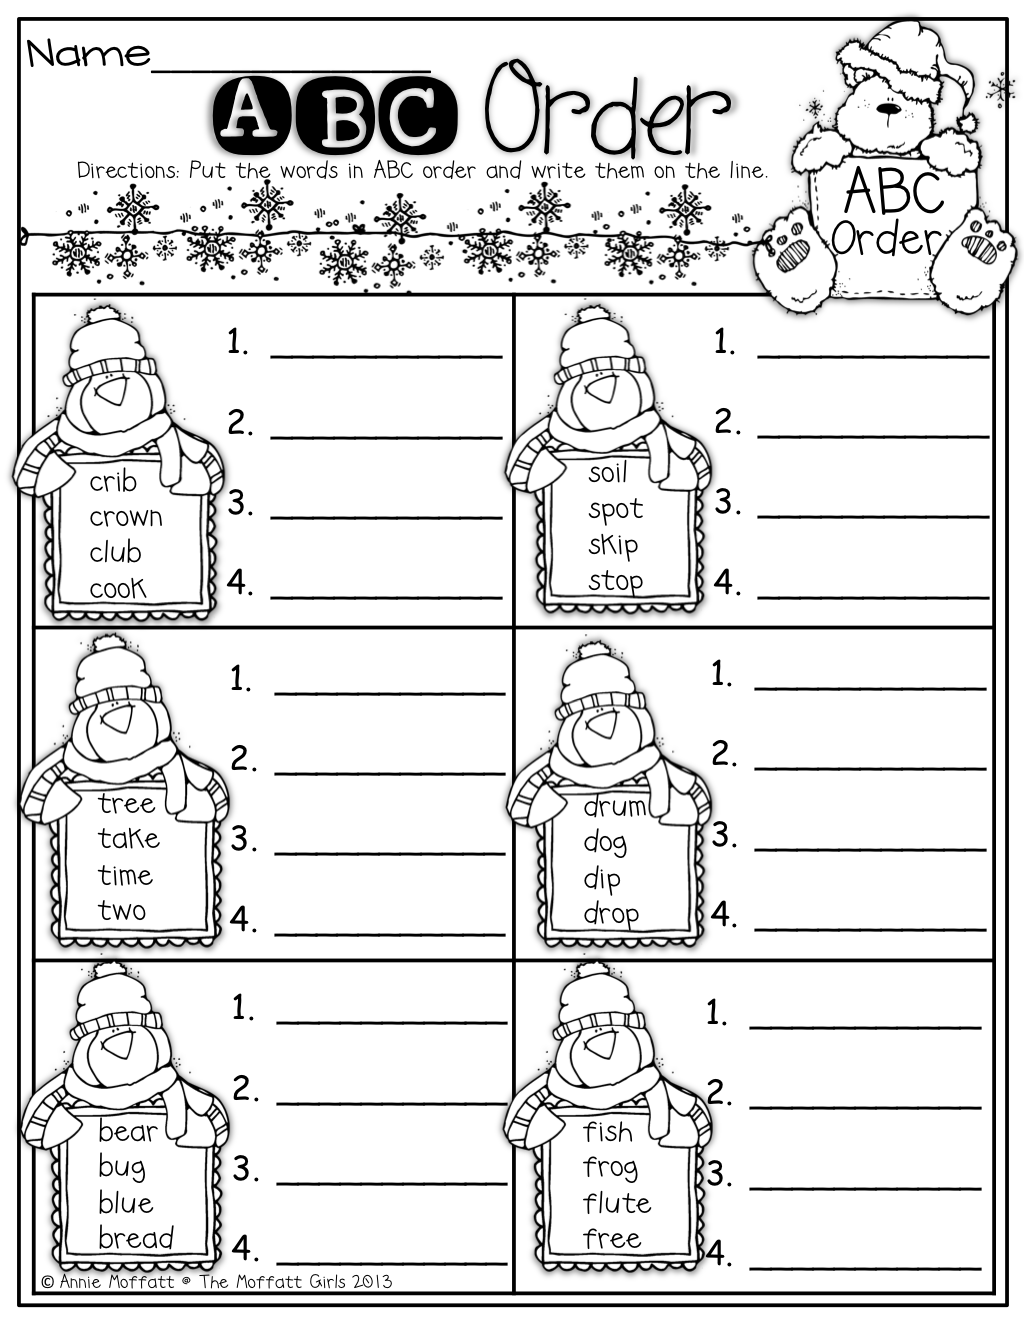 Printables Of Worksheets For First Grade Alphabetical